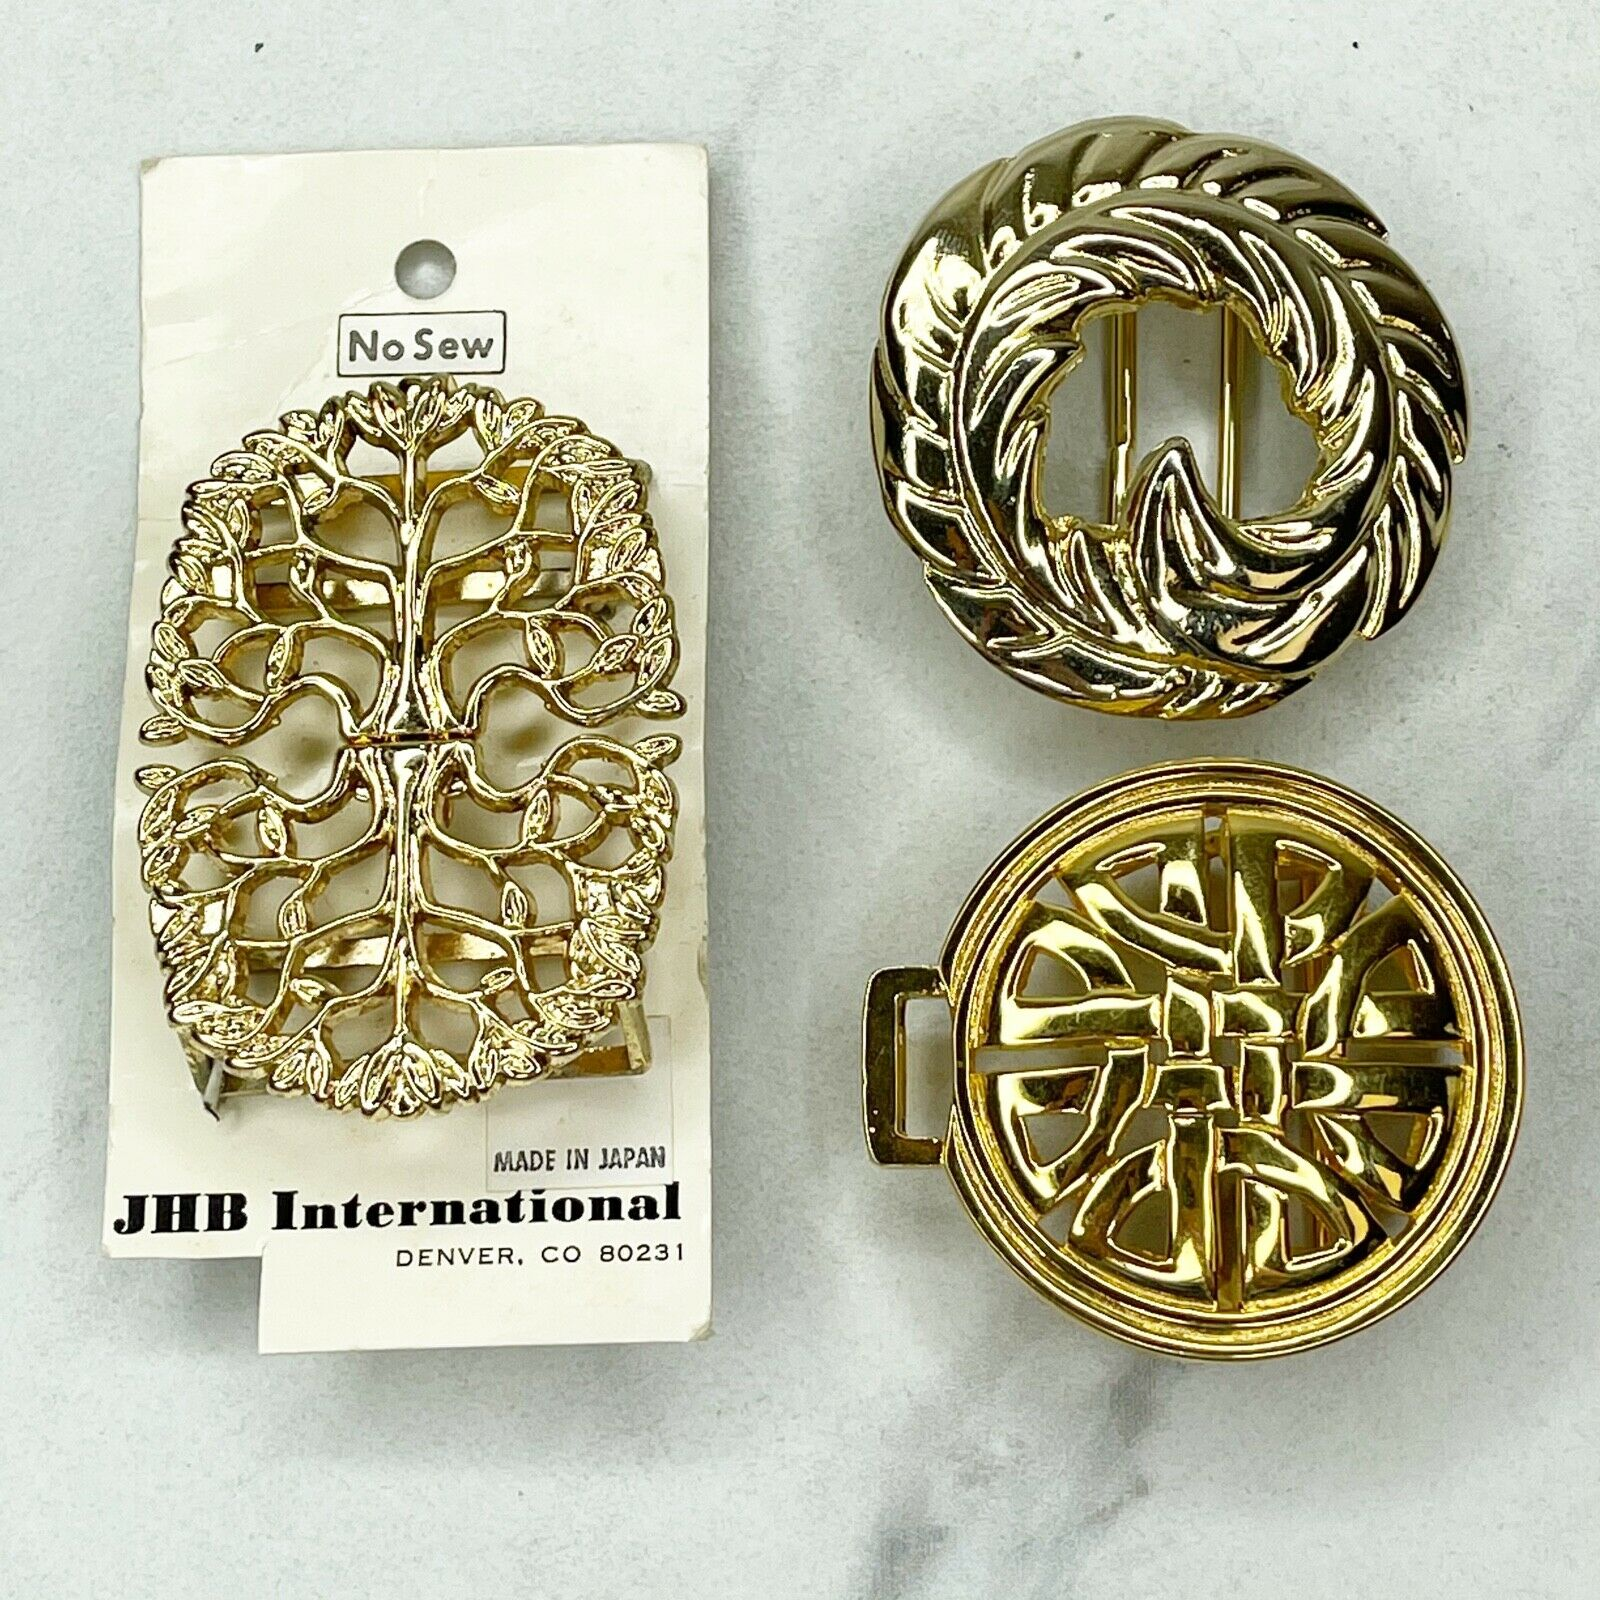 Lot of 3 Gold Tone Belt Buckles for 1.25